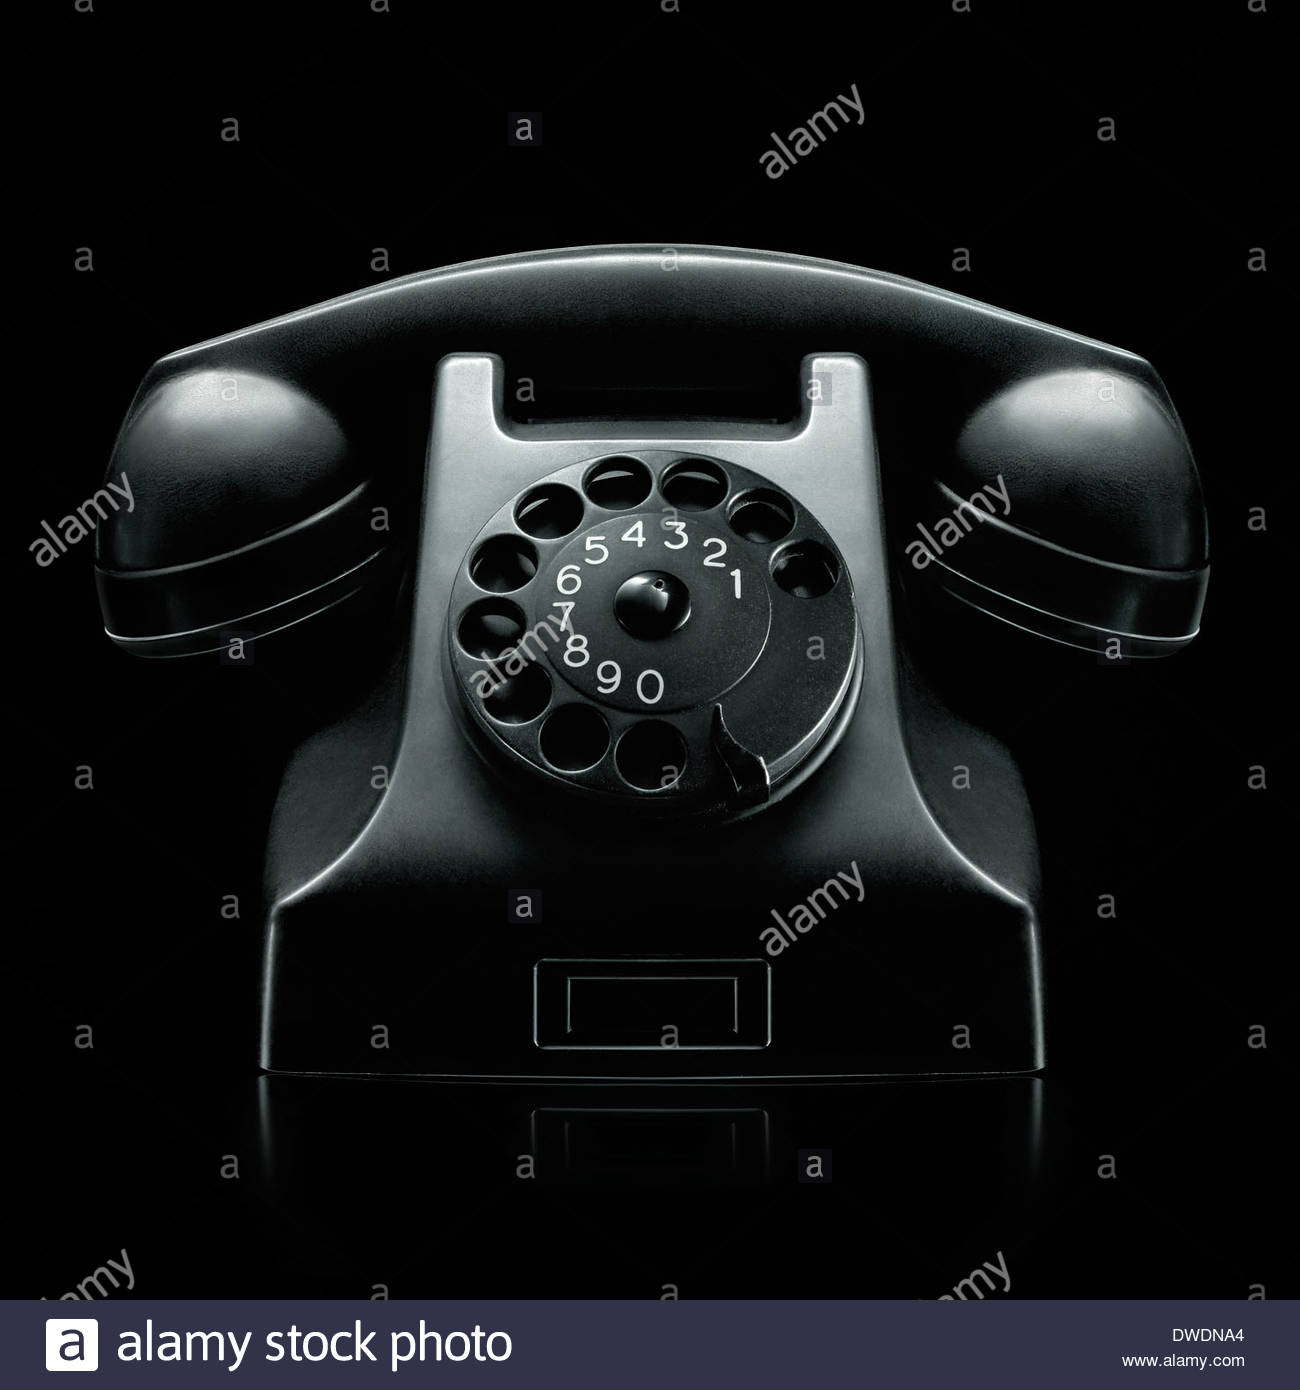 old vintage rotary dial black telephone photographed on very moody dark black background - Stock Image